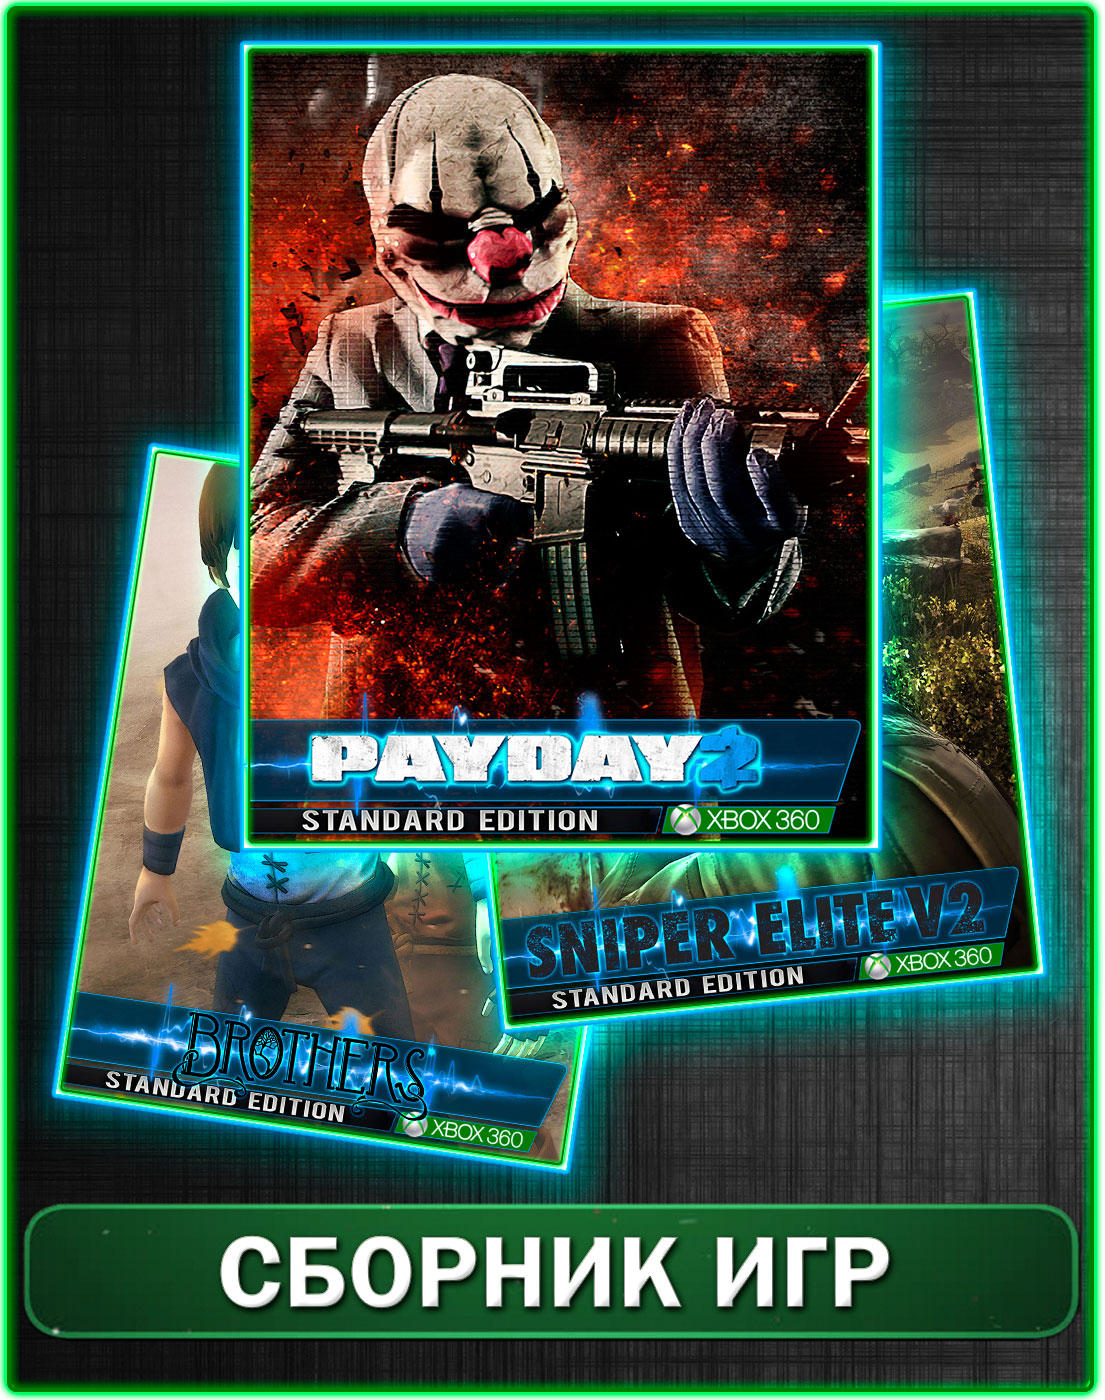 Payday 2,Sniper elite 2,Brothers XBOX 360